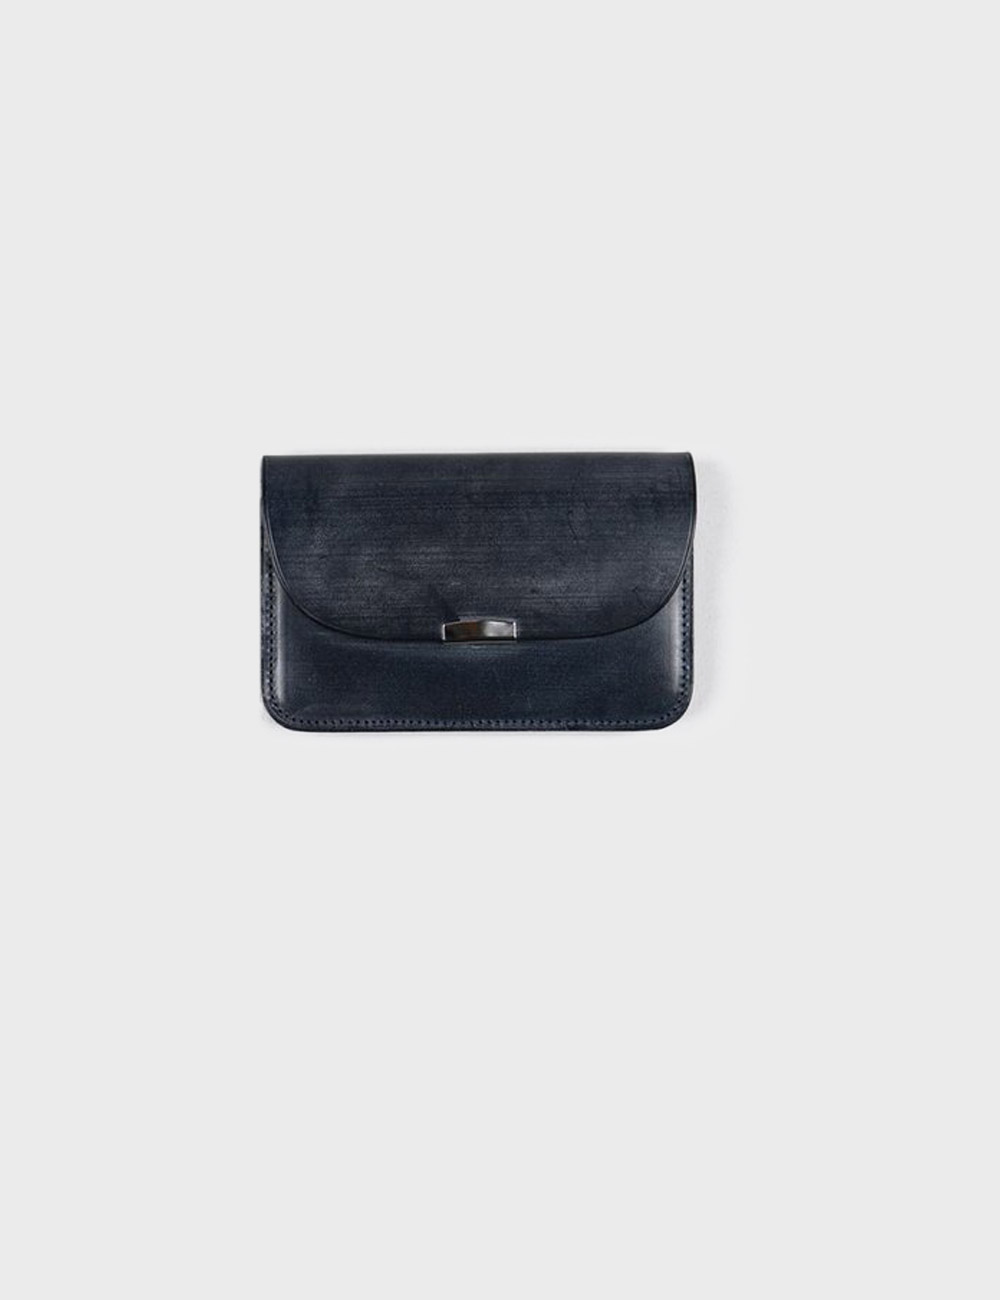 DIGAWEL : GARSON PURSE BRIDLE LEATHER (NAVY)